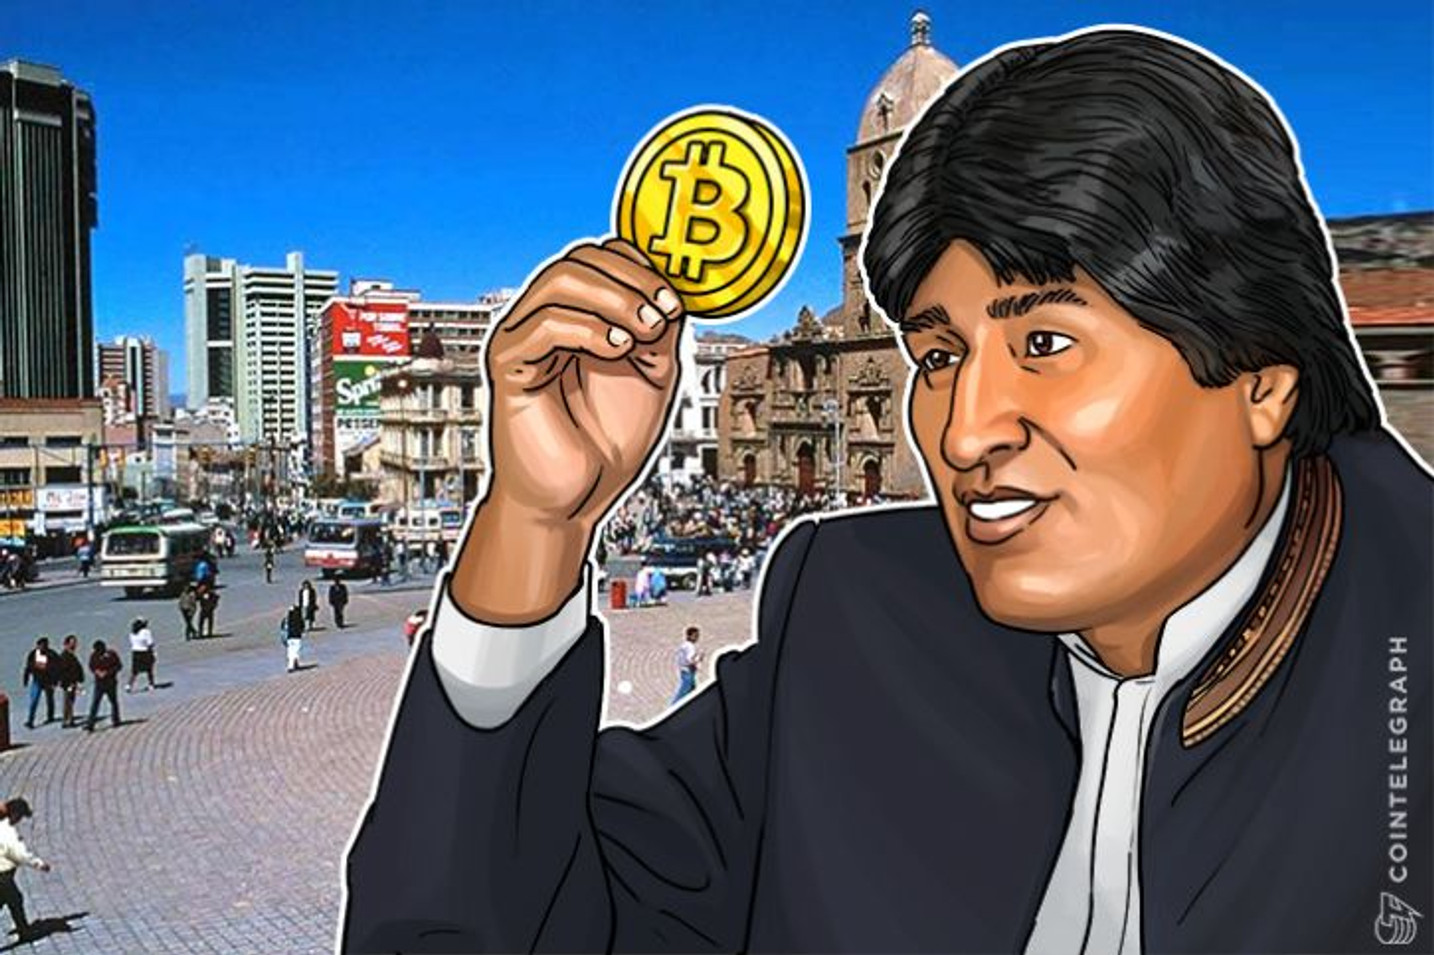 Bolivia Calls Cryptocurrency 'Pyramid Scheme,' Arrests Advocates